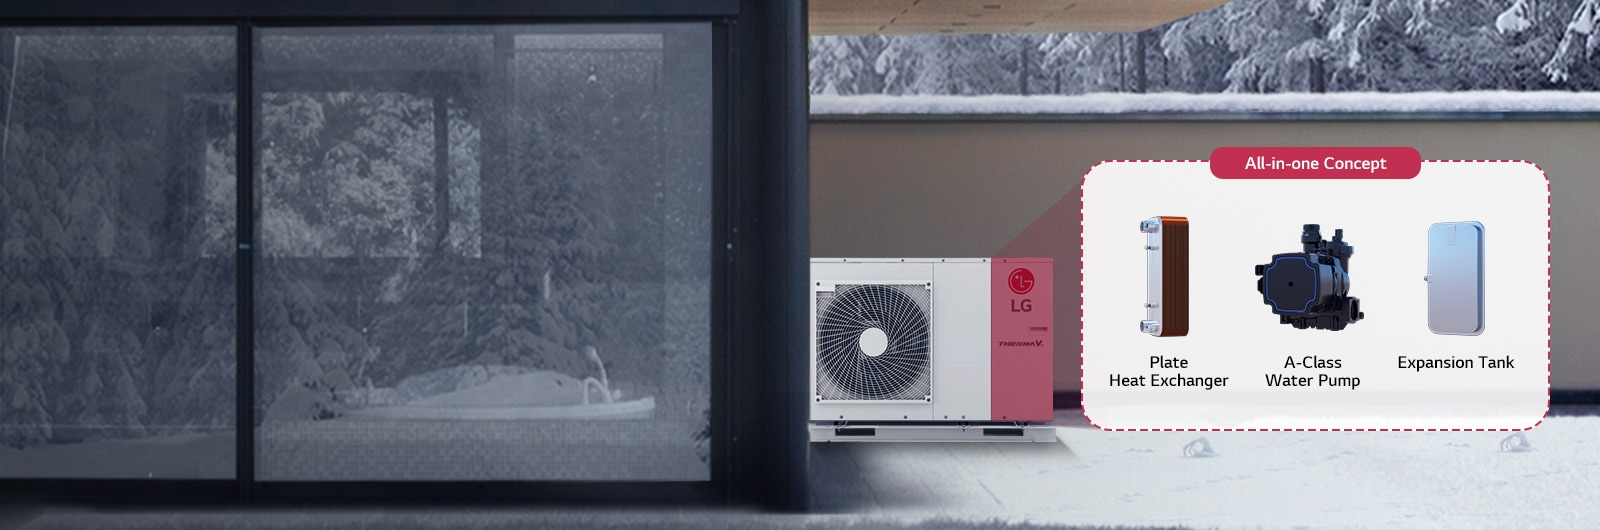 LG | Therma V R32 Monobloc | All in one heating